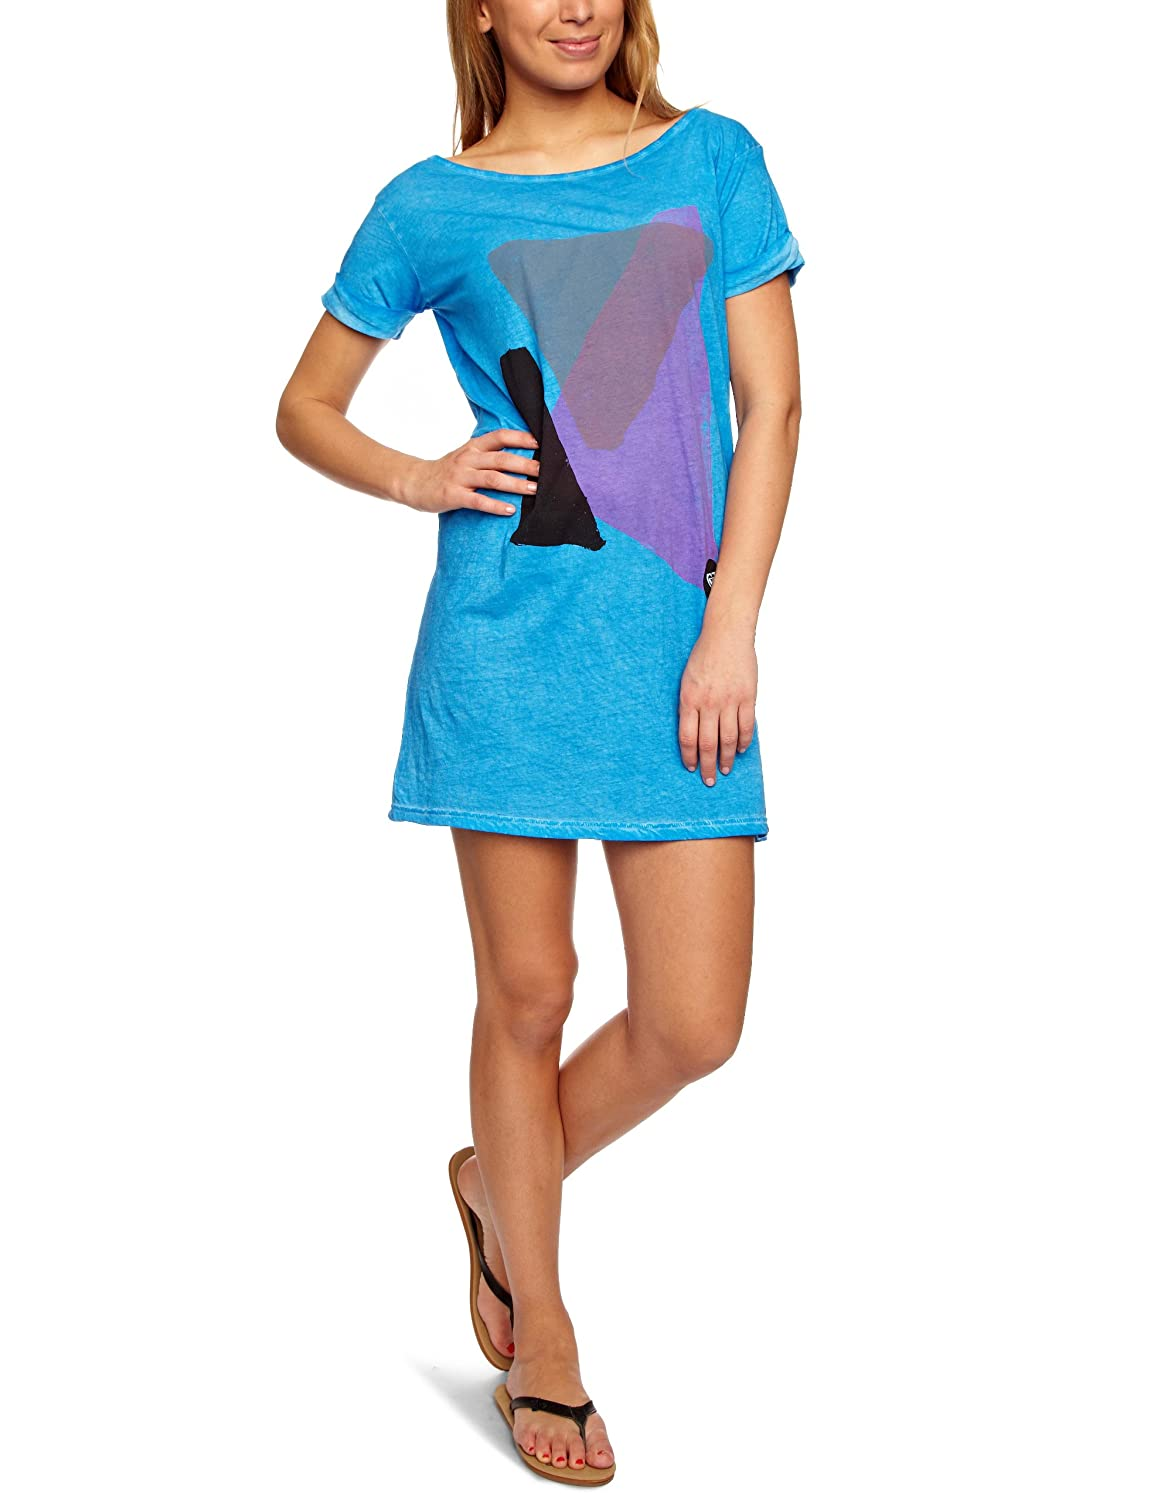 Roxy baja long tee dress